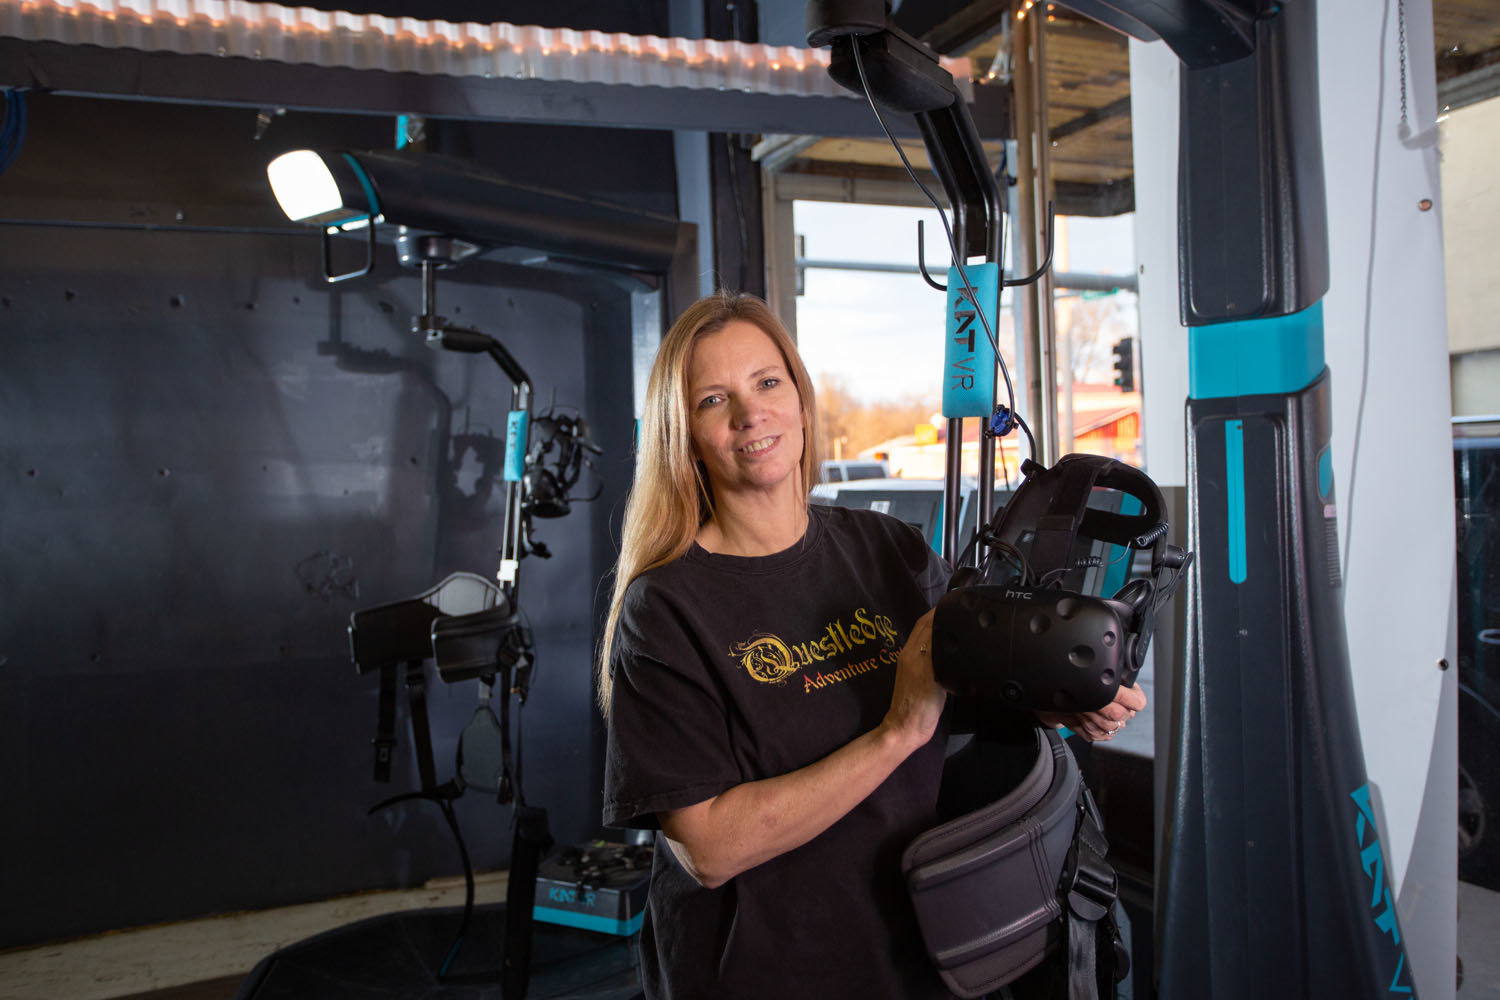 FUN AND GAMES: Virtual reality games are among the offerings Questledge owner Debbie Moore provides at her entertainment venue in Nixa.